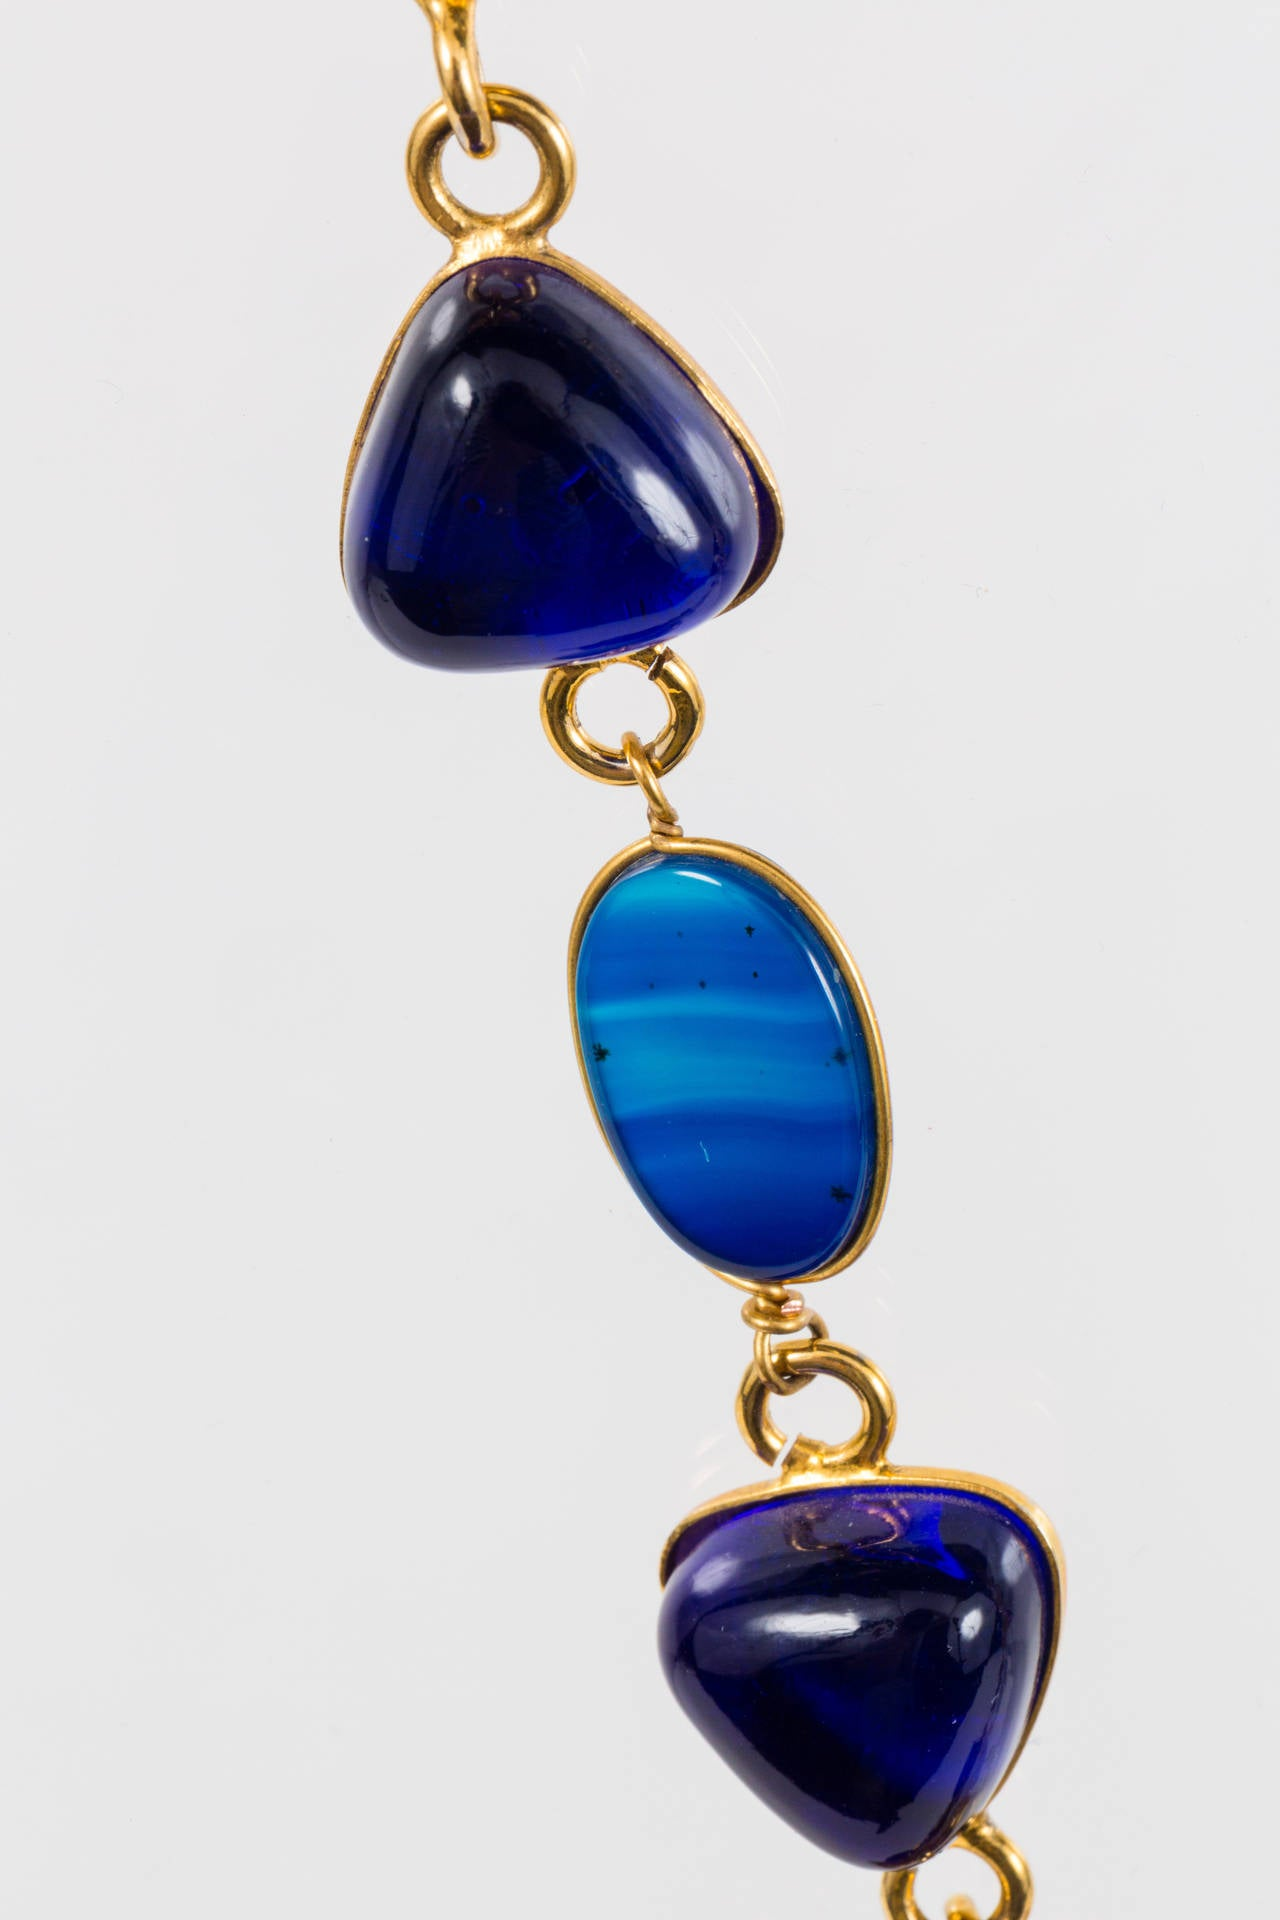 Triangular Mixed Materials Yves Saint Laurent Necklace For Sale 3